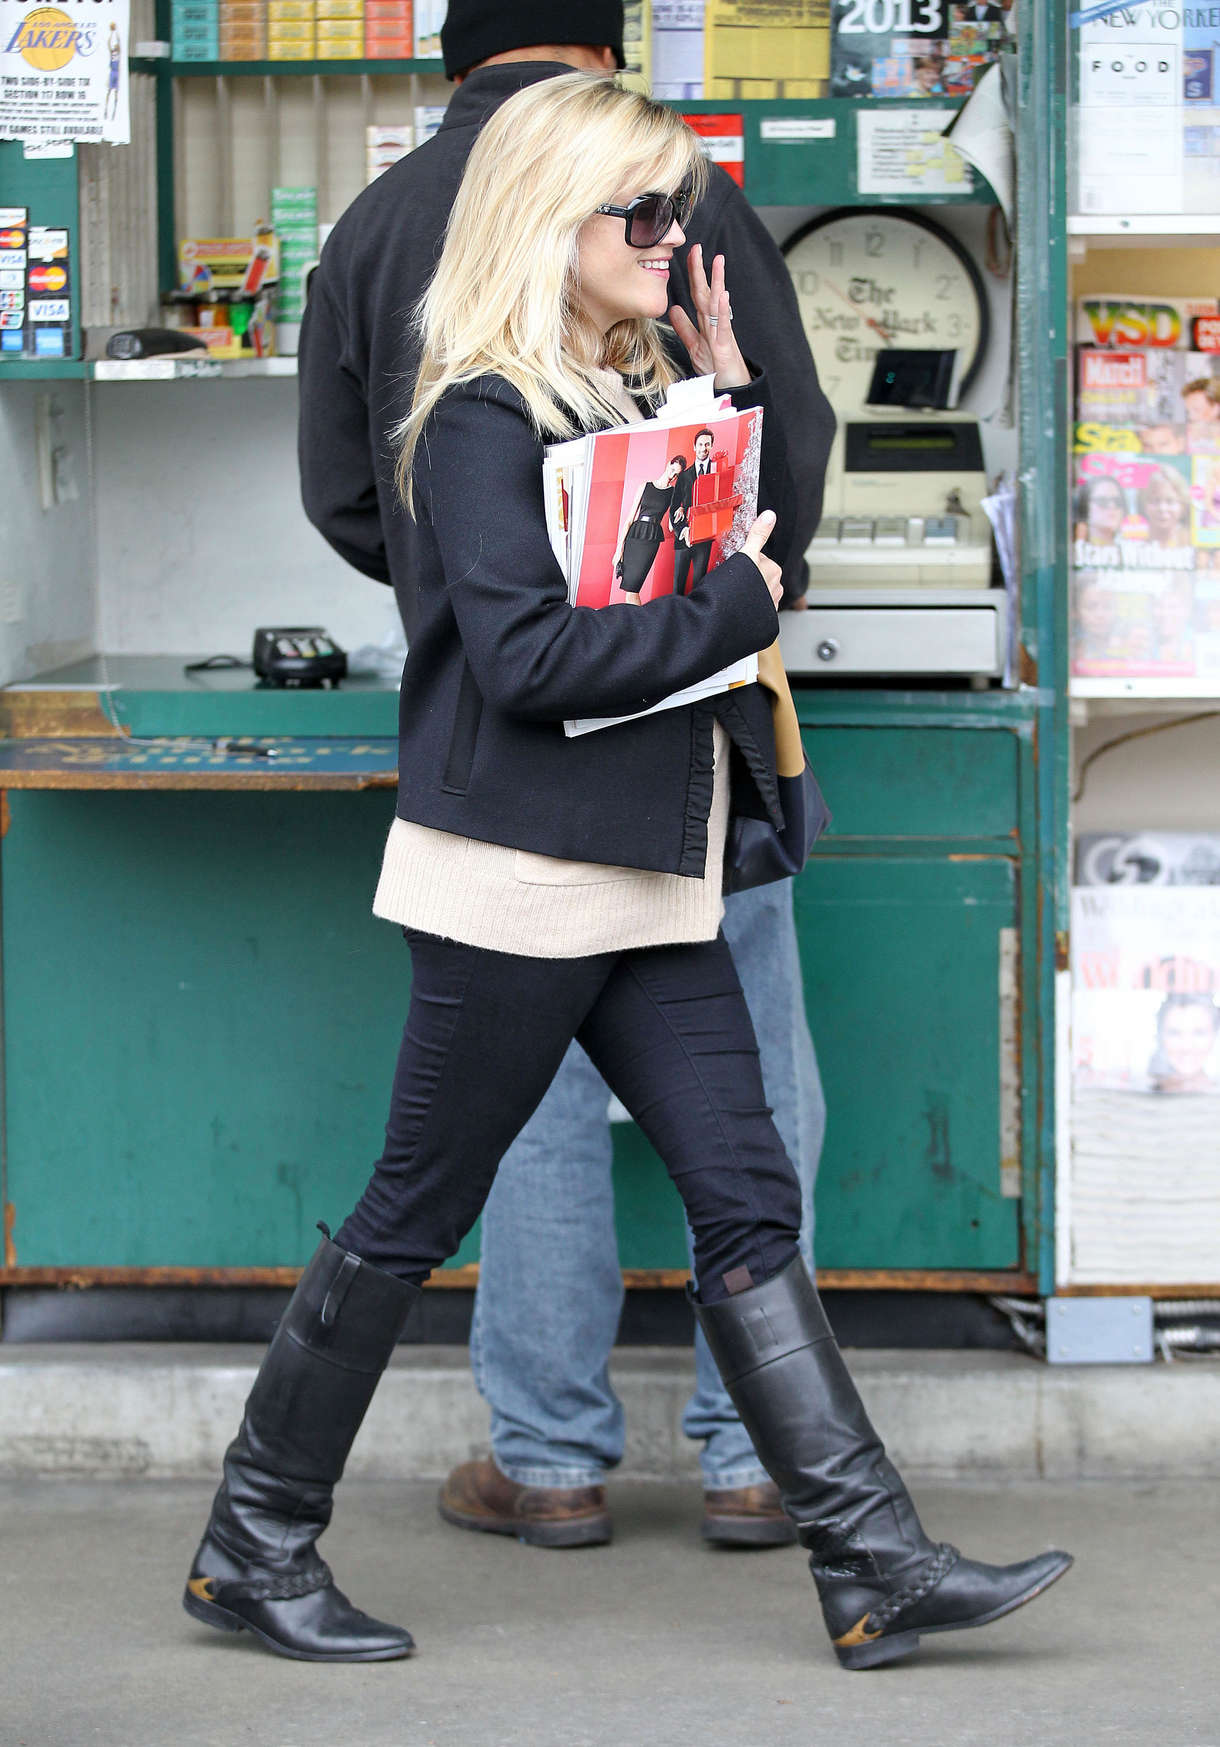 Reese Witherspoon In Boots 03 Gotceleb